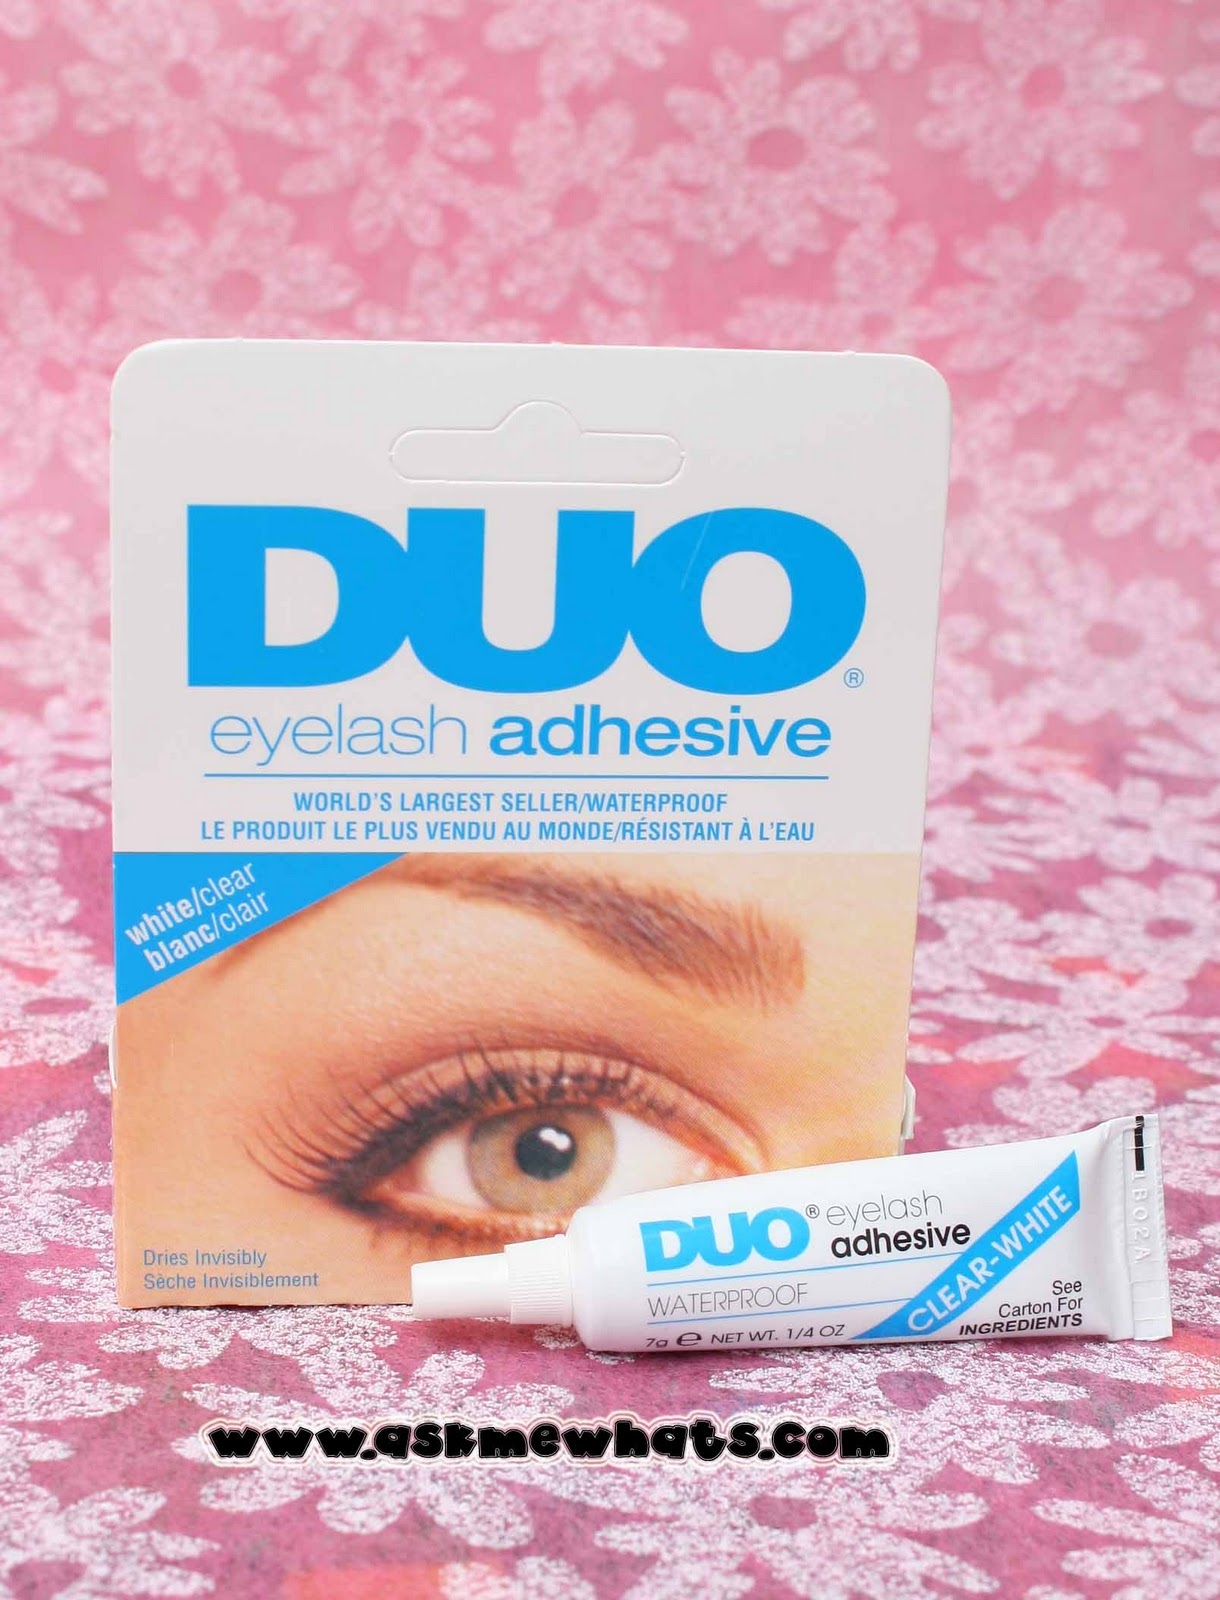 b59f2b35e25 DUO Eyelash Adhesive right in front of me! I grabbed one right away! I do  apologize I forgot the exact price but it's definitely less than Php700.00!